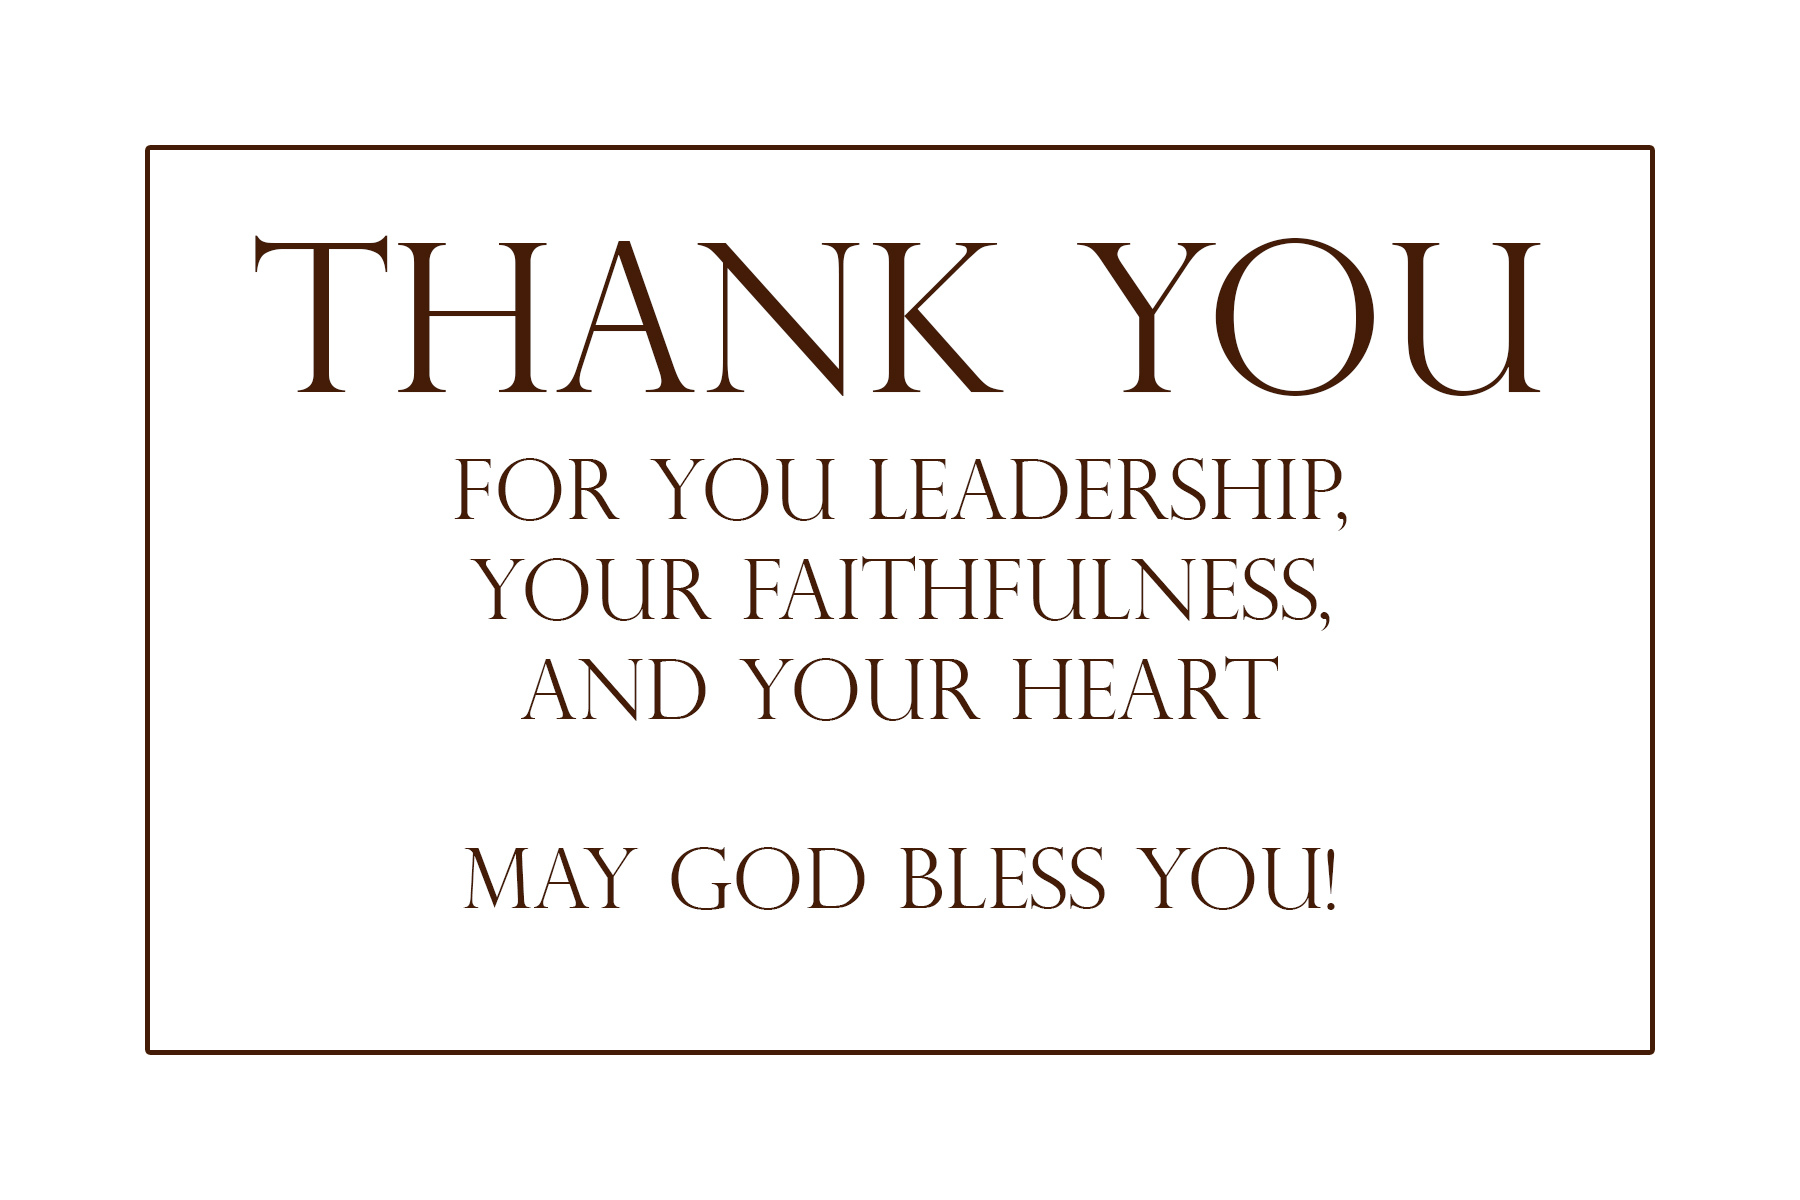 ... a card you can print, and 5 free ways you can encourage your pastor.